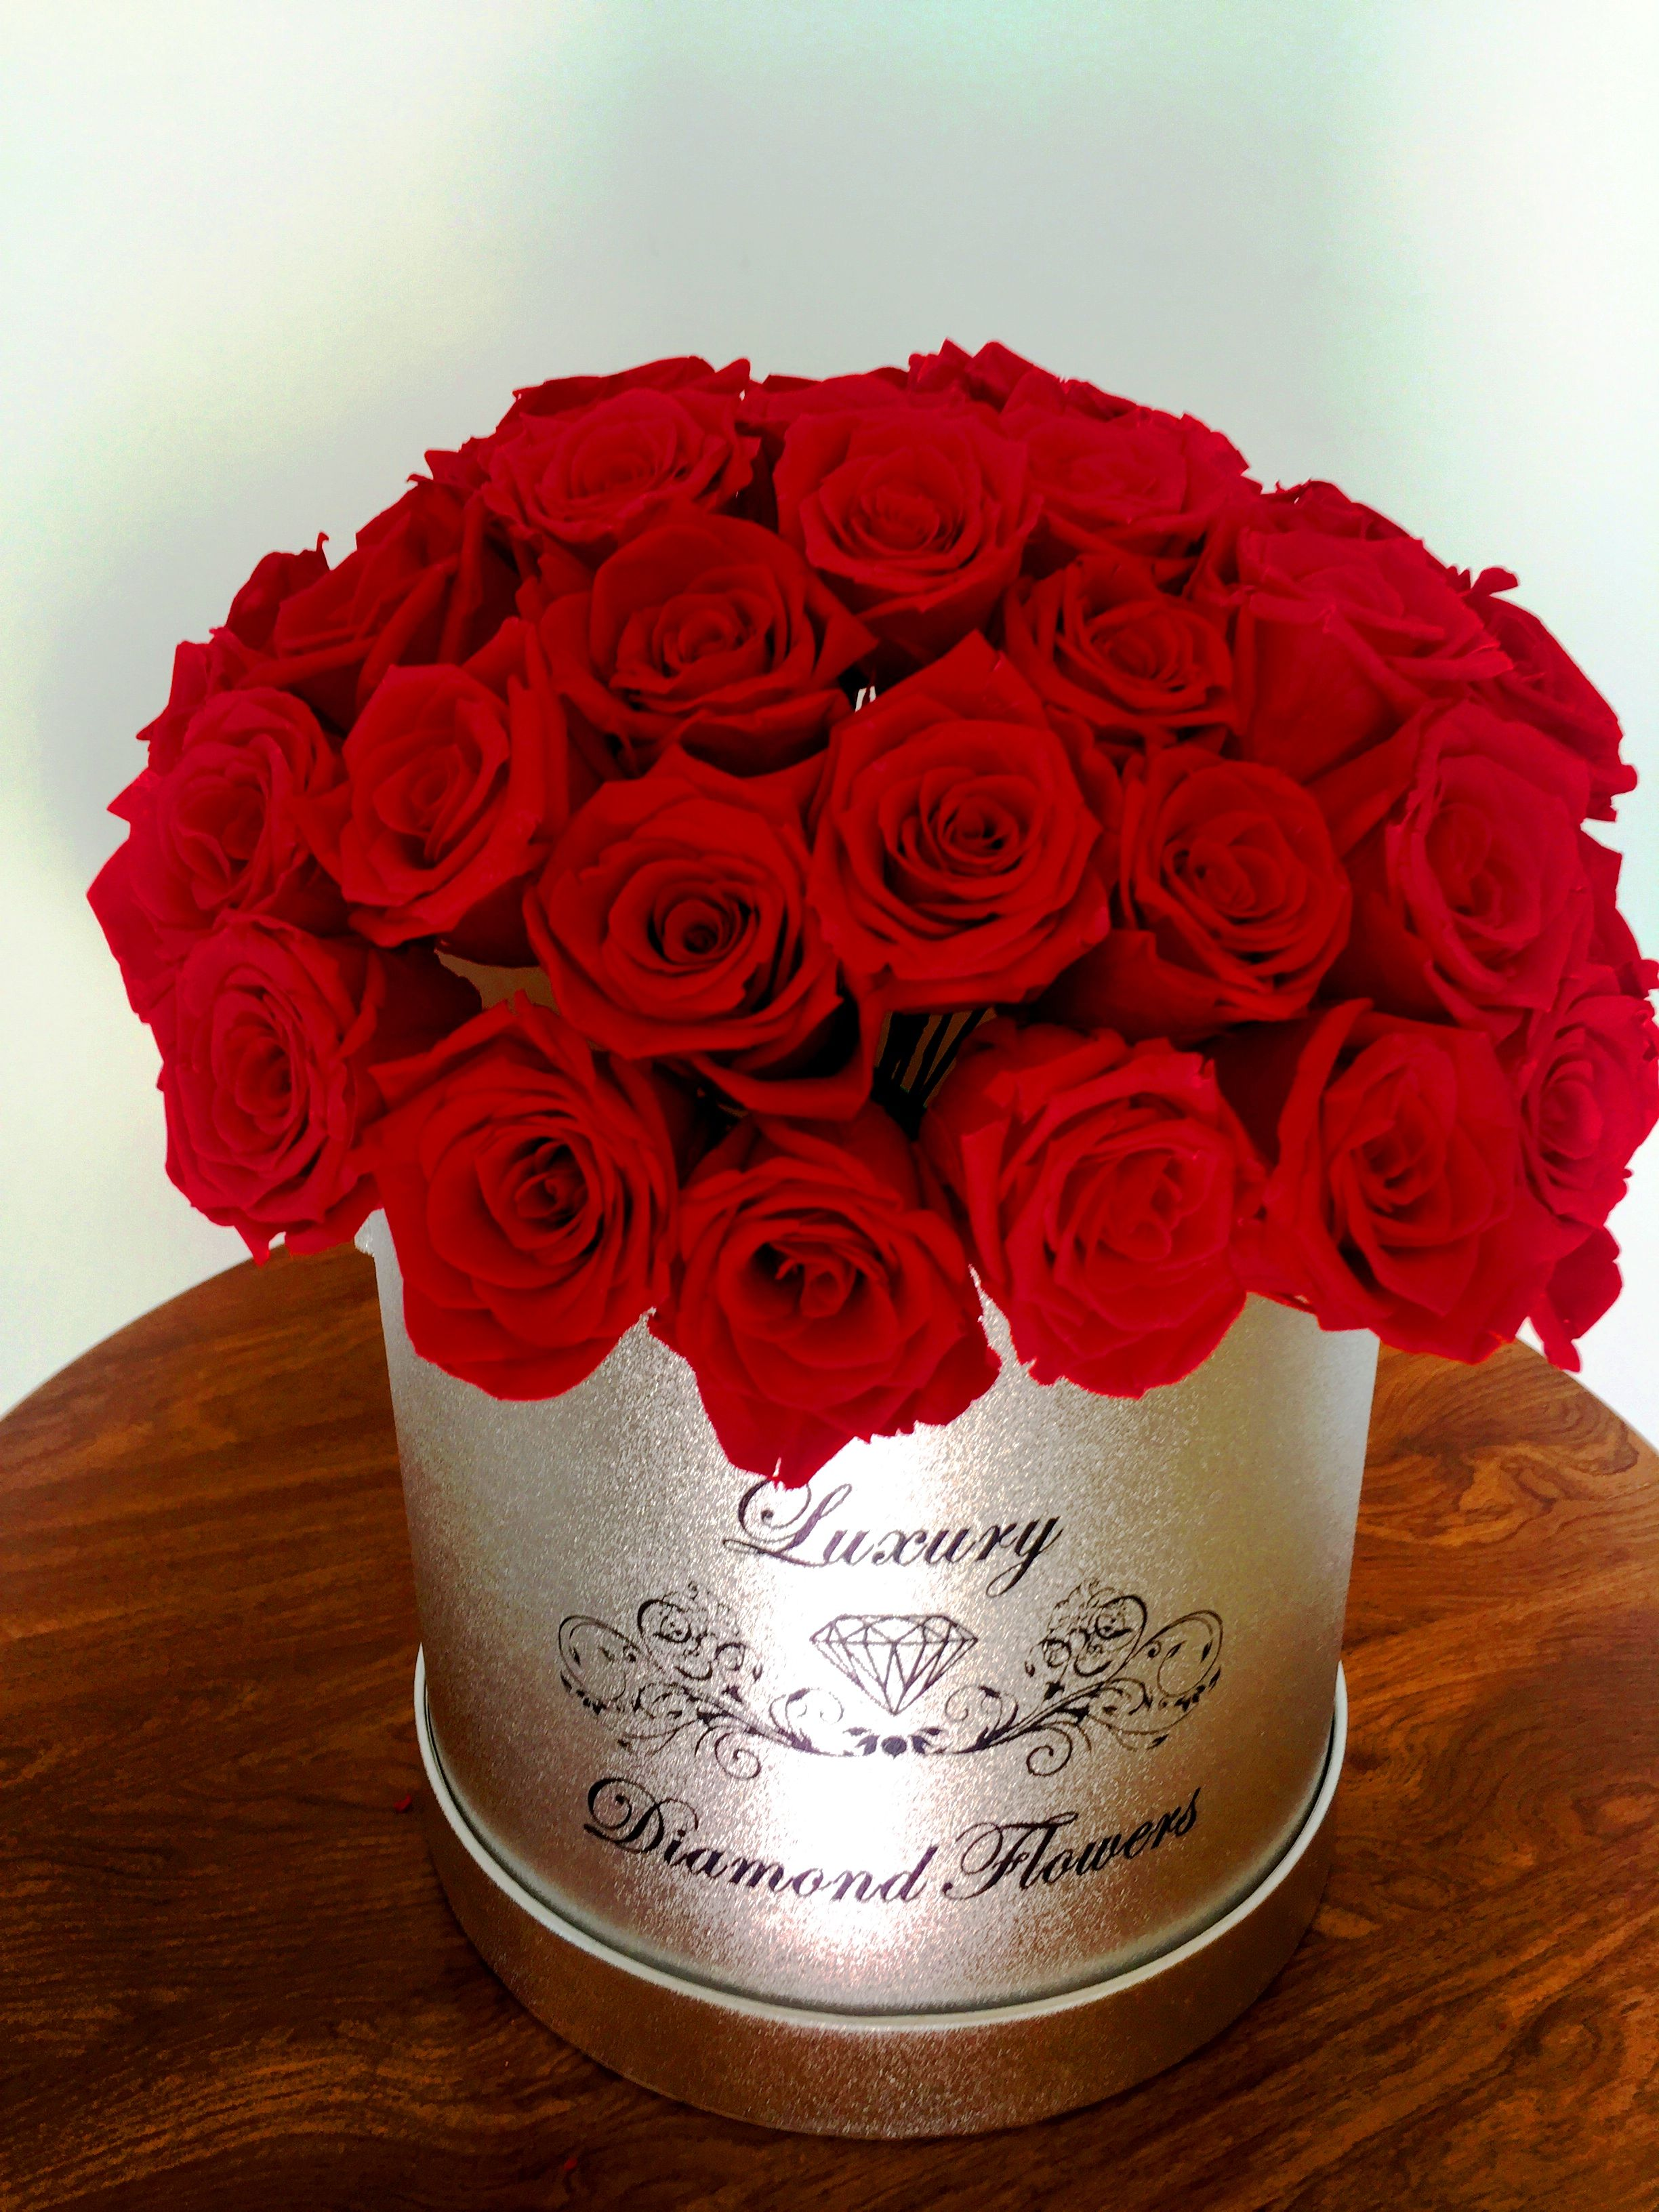 Luxury flowers in hat box miami roses delivery new york florist luxury flowers in hat box miami roses delivery new york florist red roses izmirmasajfo